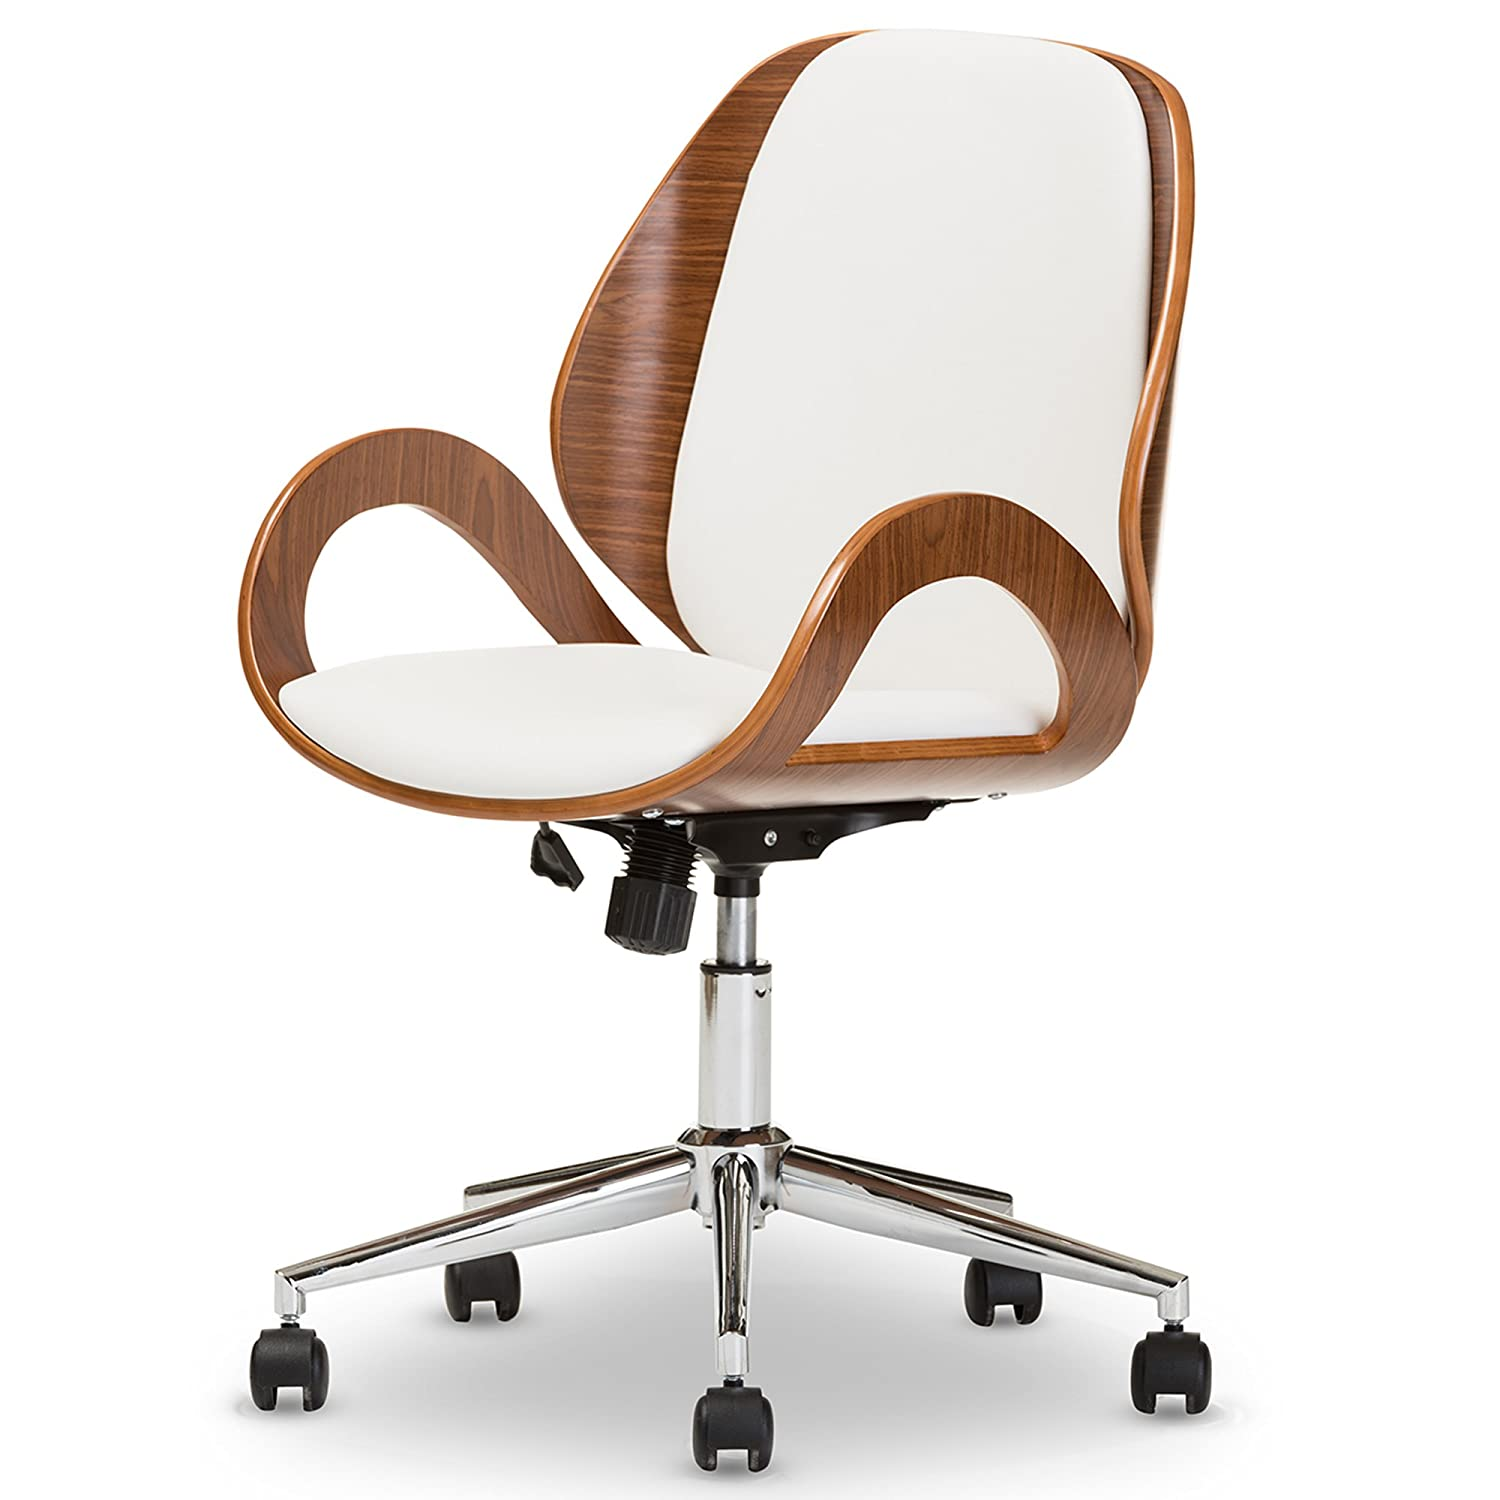 Baxton Studio Didier Modern & Contemporary Office Chair, Walnut/White